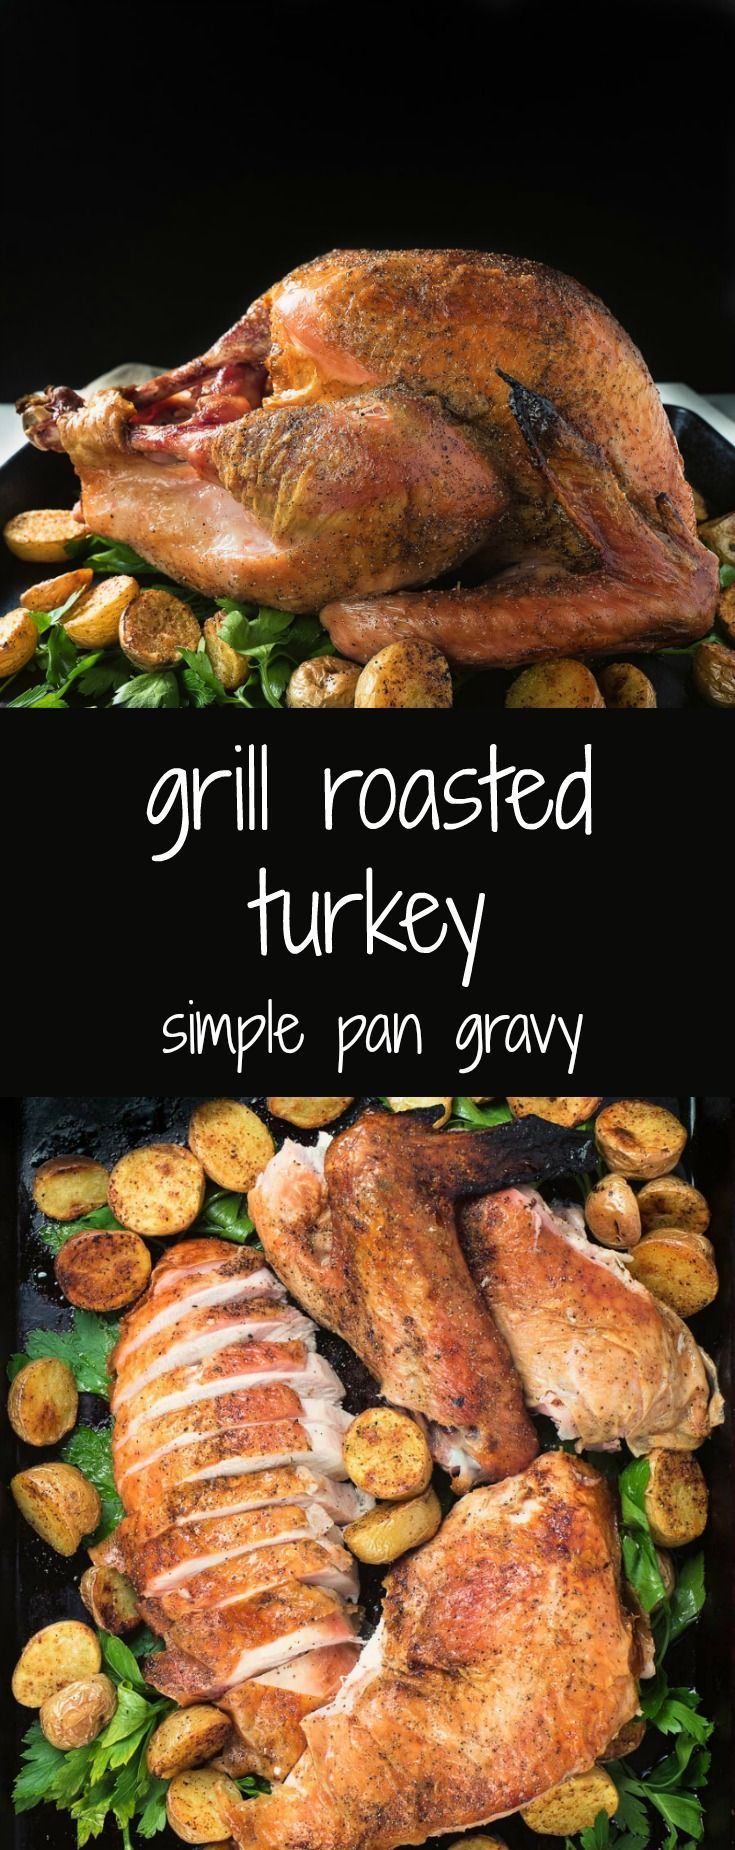 Mix it up with a grill roasted turkey dinner.